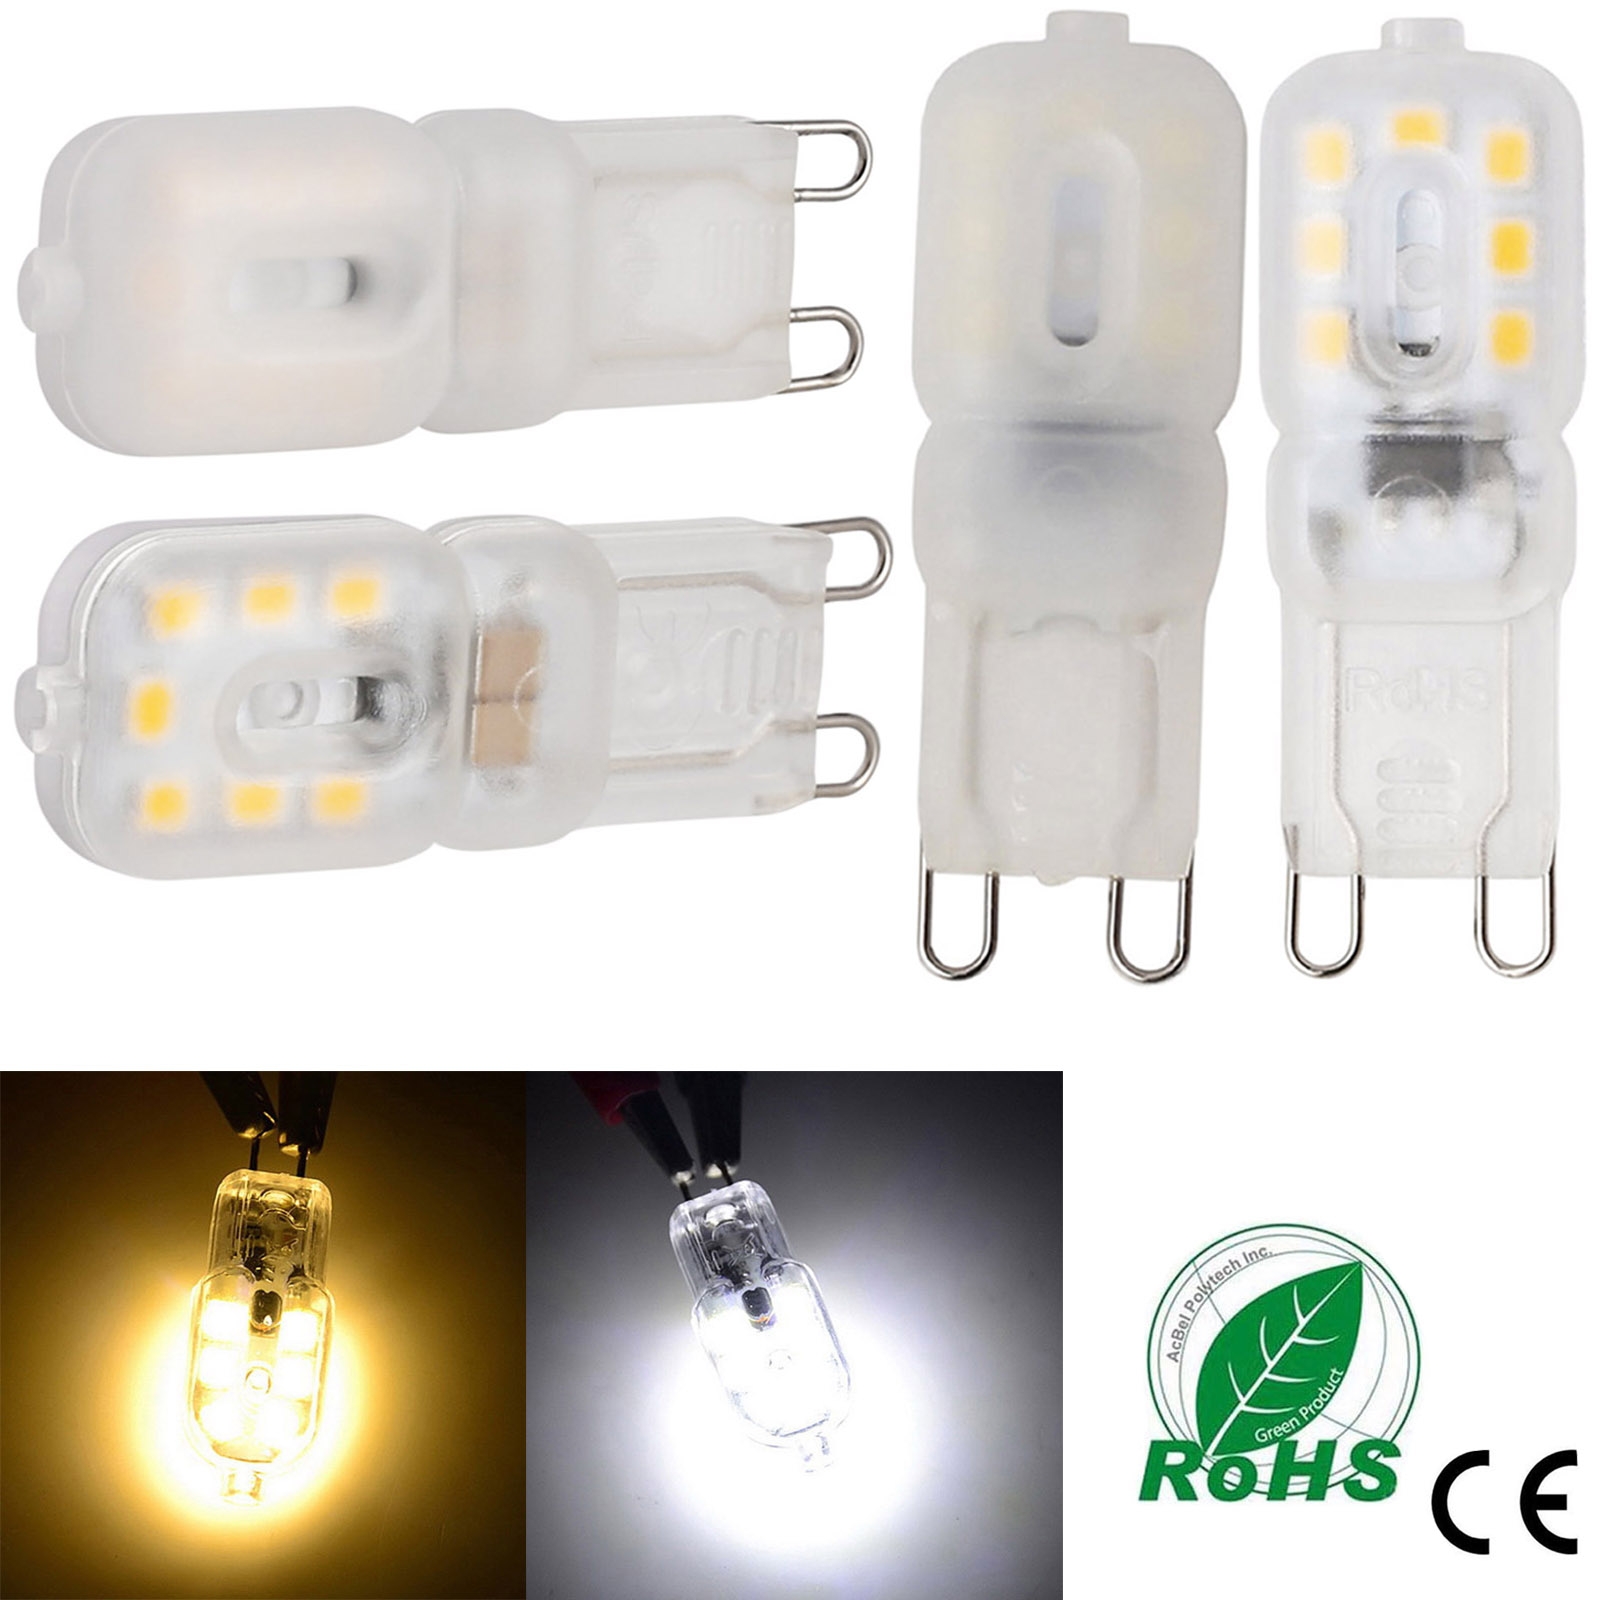 10PCS/lot Mini <font><b>LED</b></font> Lamp <font><b>G9</b></font> 3W High Bright Lampada <font><b>LED</b></font> 110V <font><b>220V</b></font> SMD 2835 Bombillas <font><b>LED</b></font> Bulb Replace 40W Halogen <font><b>Ampoule</b></font> Luz image